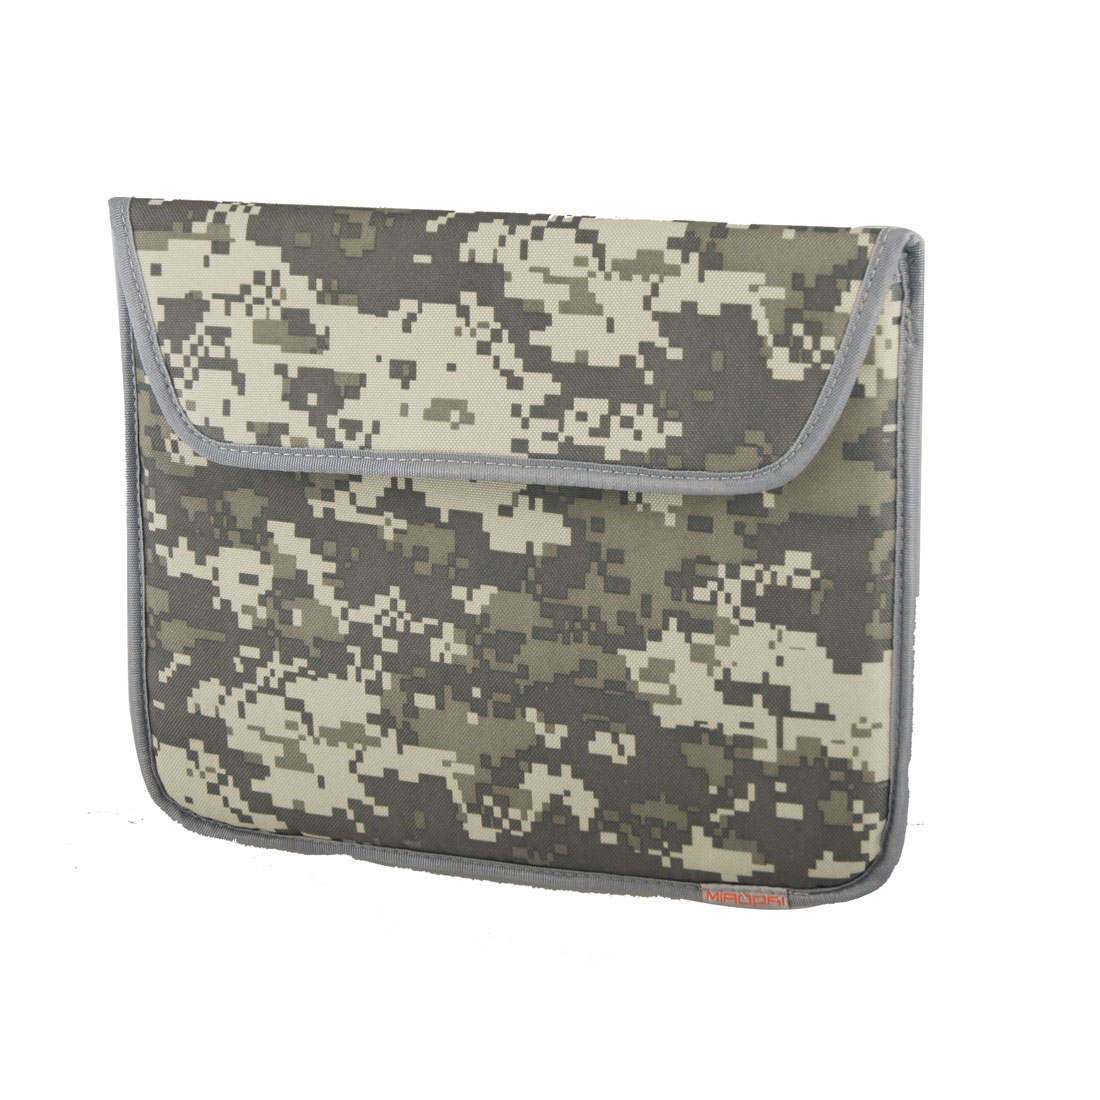 "10"" 10.1"" 10.2"" Camouflage Laptop Sleeve Bag Case Cover Pouch"